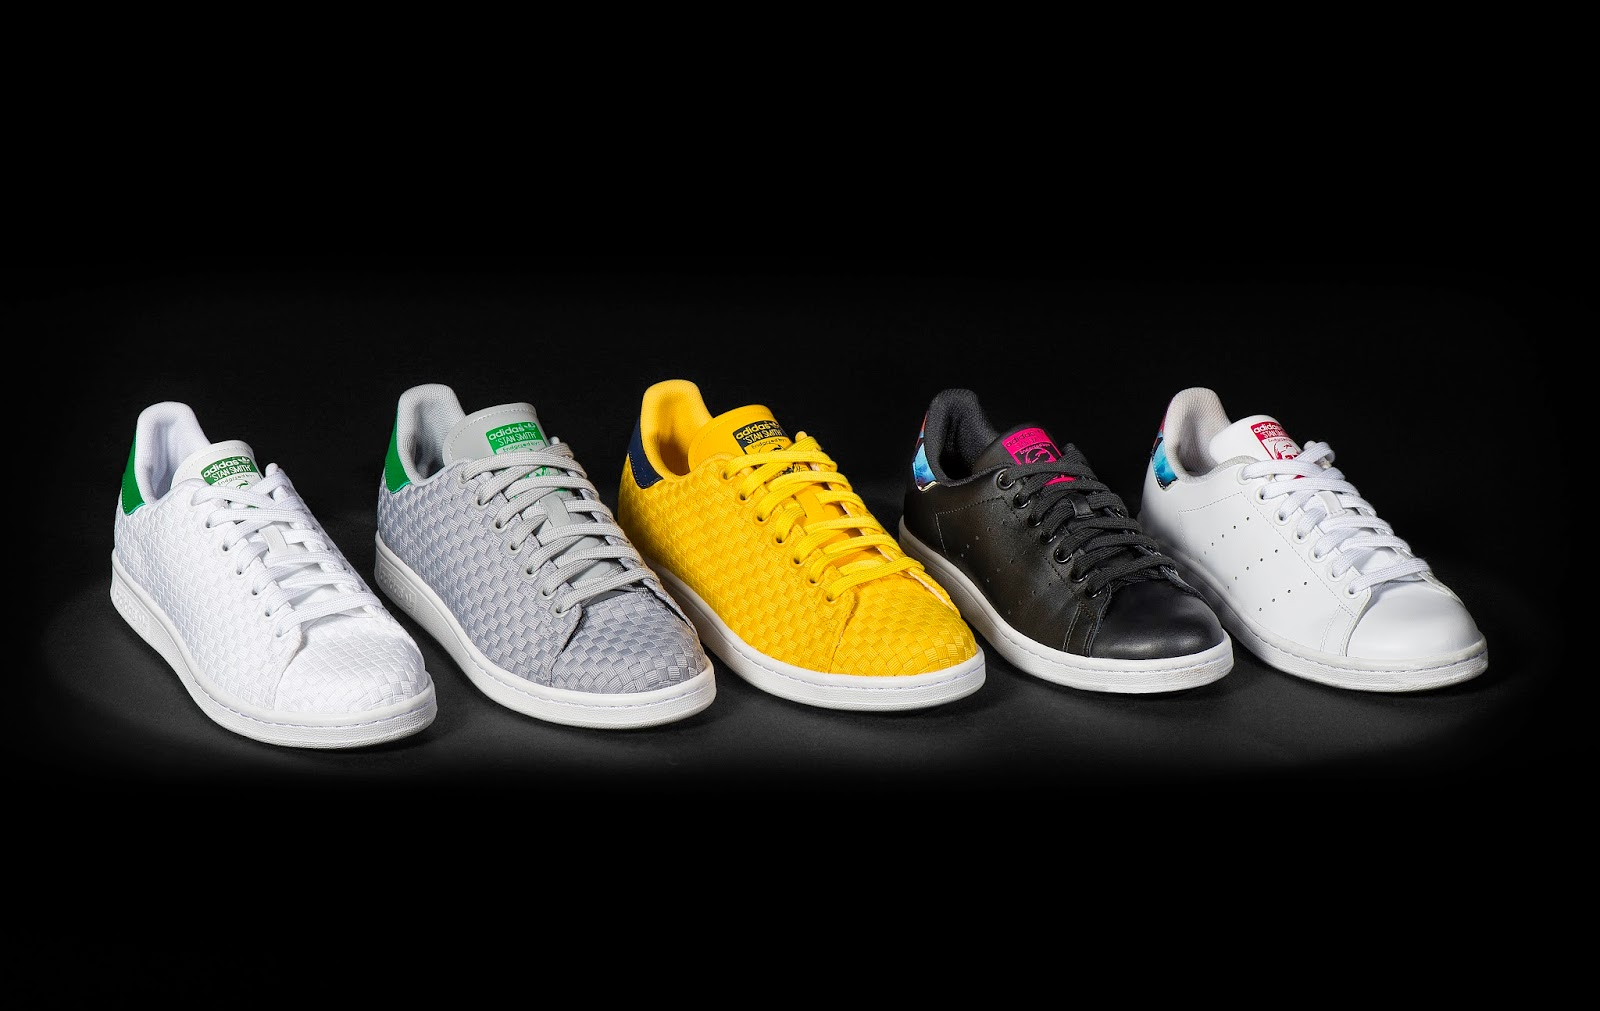 FOOT LOCKER BRINGT EXCLUSIVE SNEAKERS WITH BIG PERSONALITIES - STAN SMITH DAY